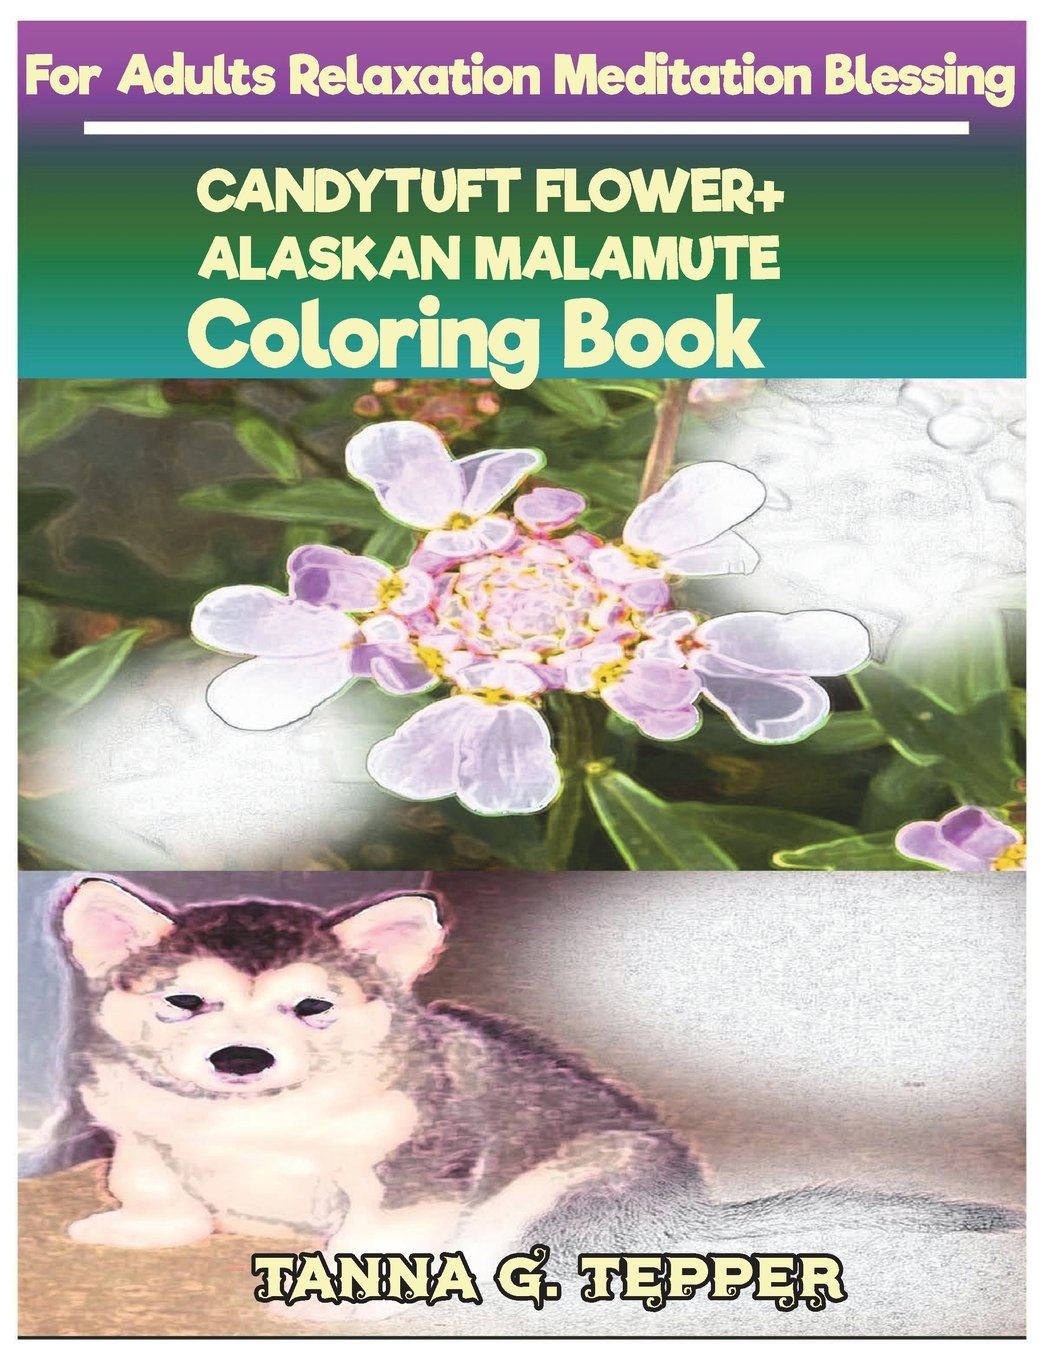 CANDYTUFT FLOWER+ALASKAN MALAMUTE Coloring book for Adults Relaxation Meditati: Sketch coloringbook Grayscale Pictures pdf epub